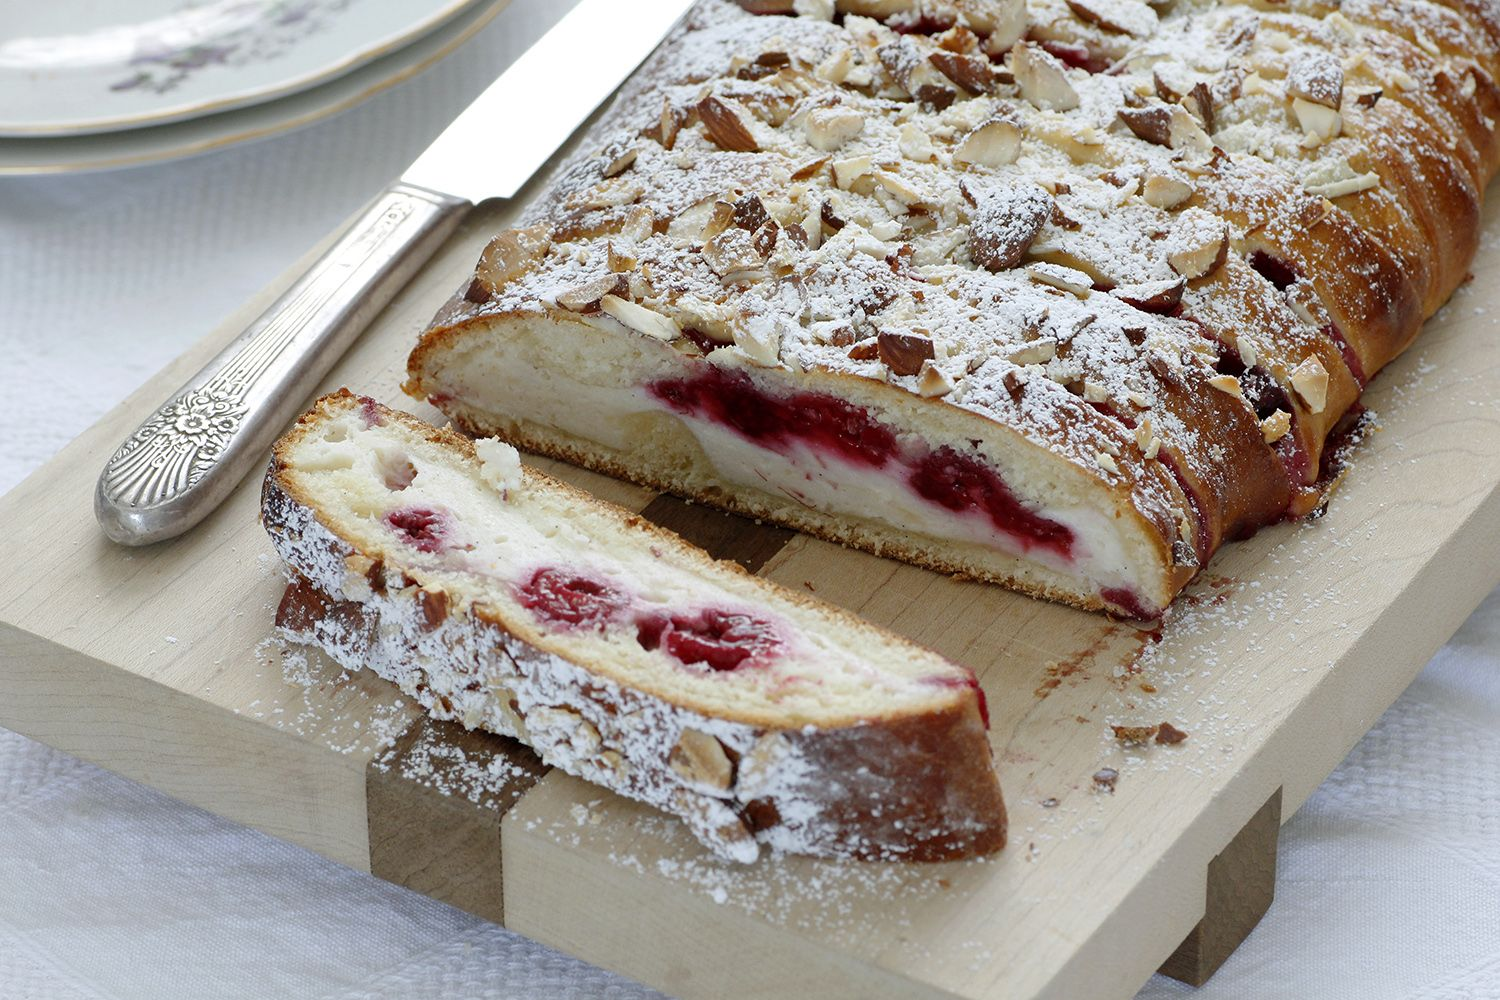 Cheese and Raspberry Braid